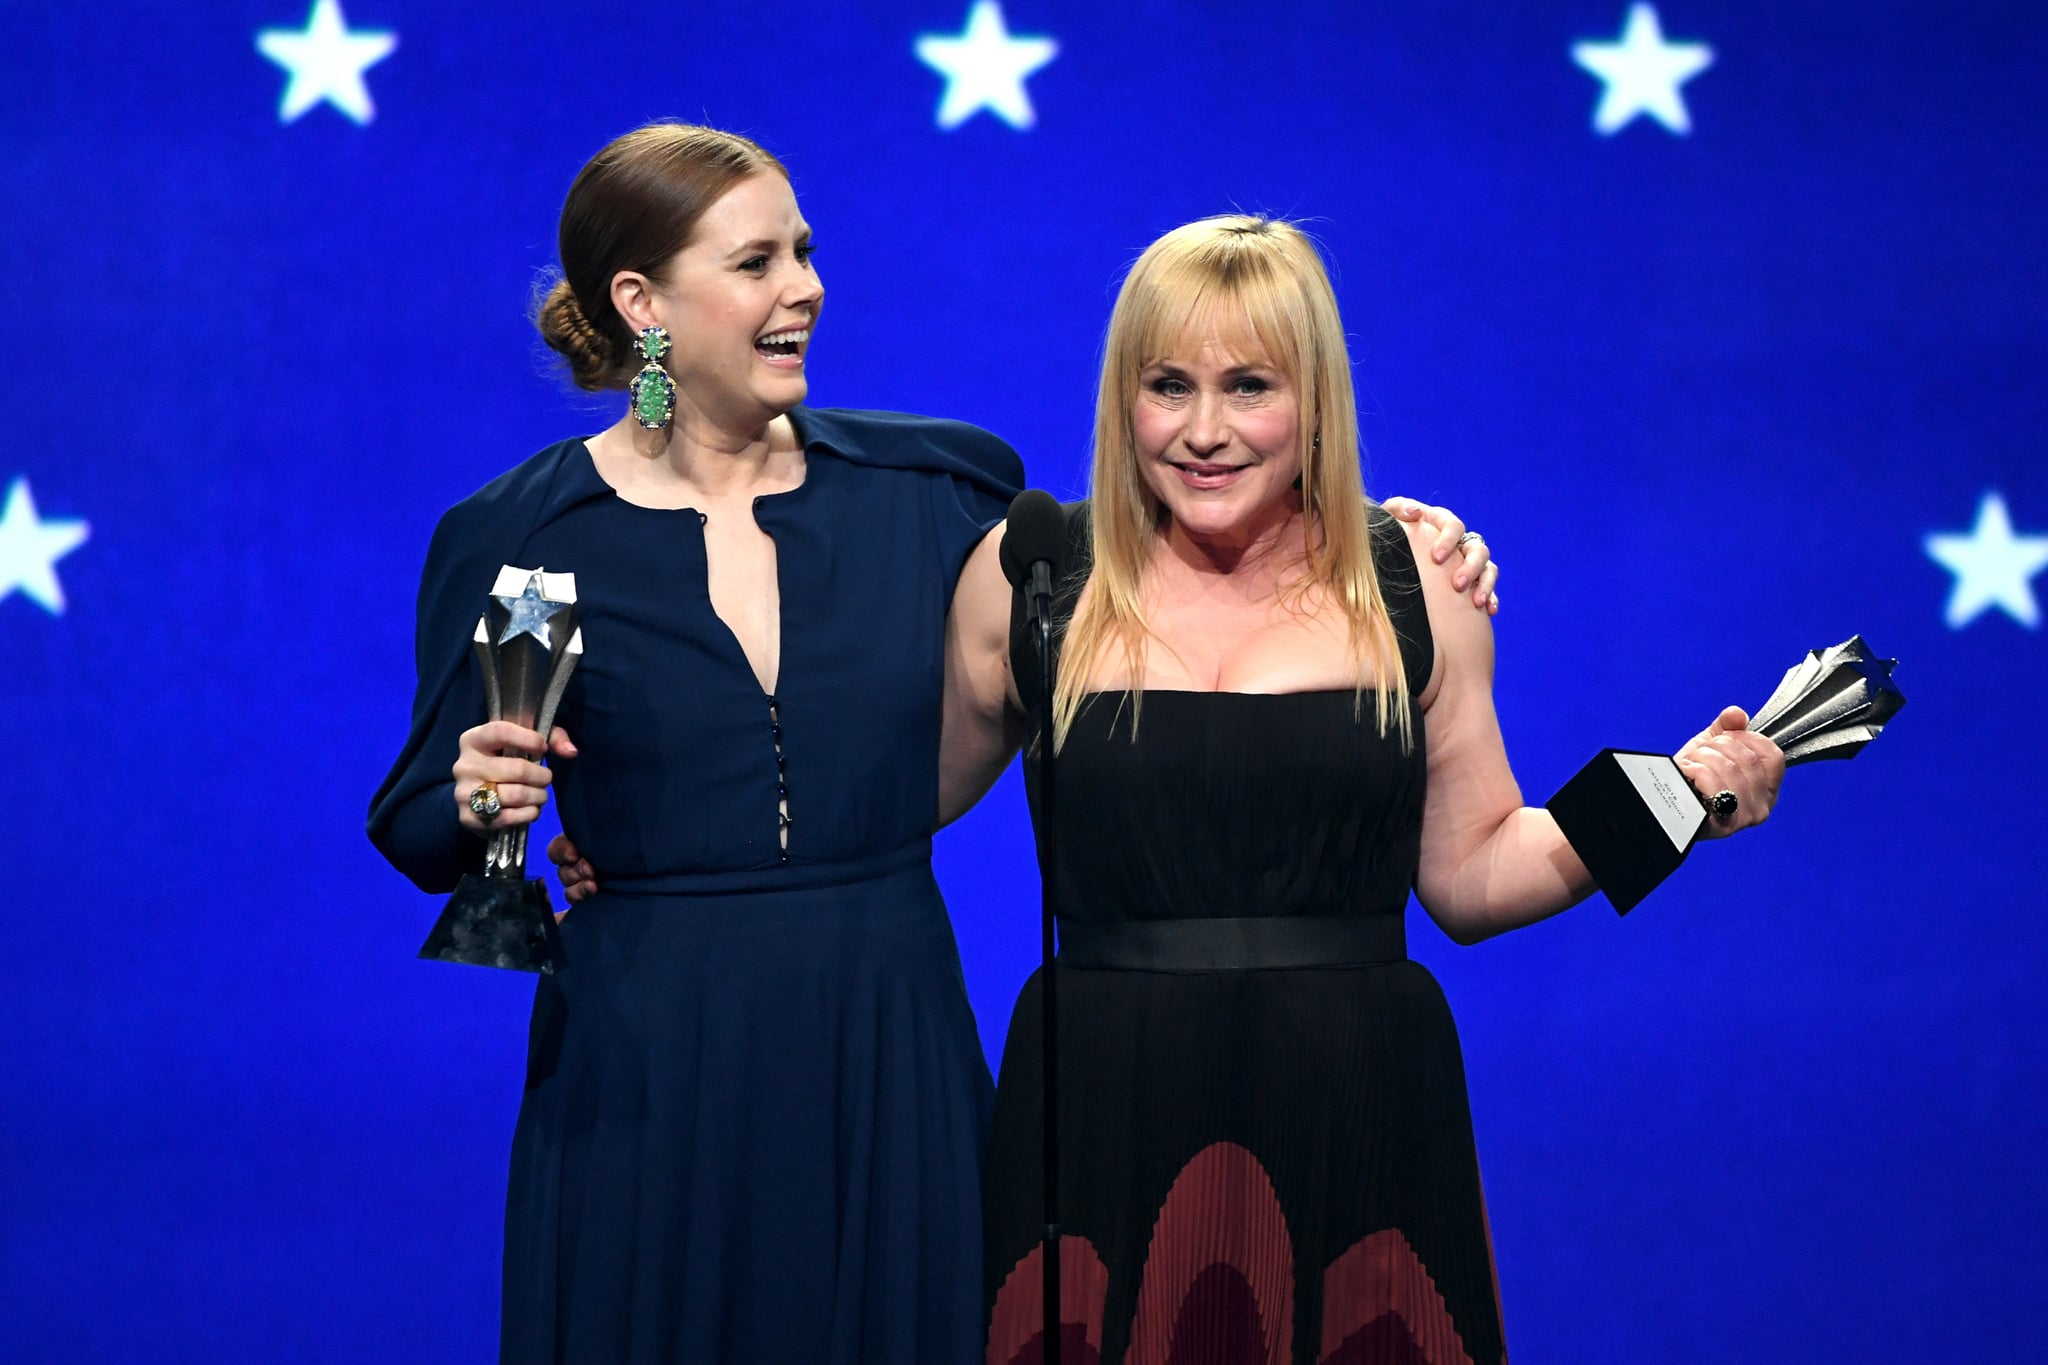 SANTA MONICA, CA - JANUARY 13: Amy Adams (L) and Patricia Arquette, co-winners of the Best Actress in a Limited Series or Movie Made for Television award (Adams for 'Sharp Objects' and Arquette for 'Escape at Dannemora') accept their awards onstage during the 24th annual Critics' Choice Awards at Barker Hangar on January 13, 2019 in Santa Monica, California. (Photo by Kevin Winter/Getty Images for The Critics' Choice Awards)